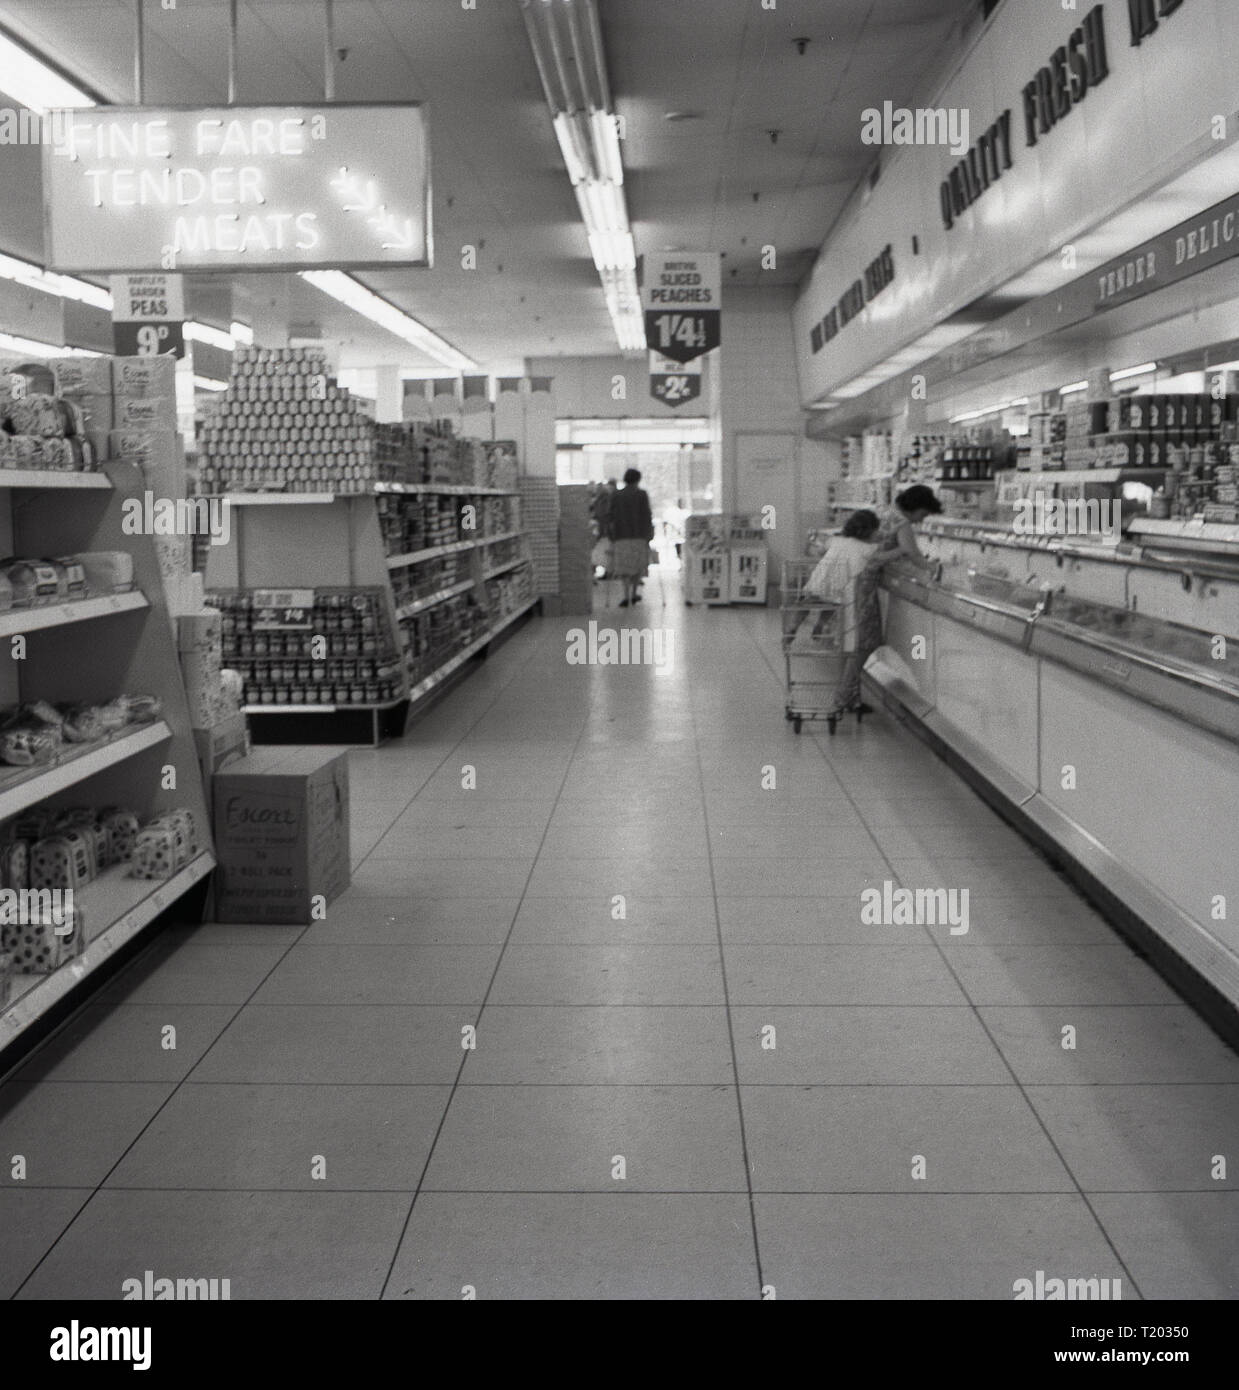 1960s, a shopping ailse in a new 'Finefare' supermarket, England, UK. - Stock Image